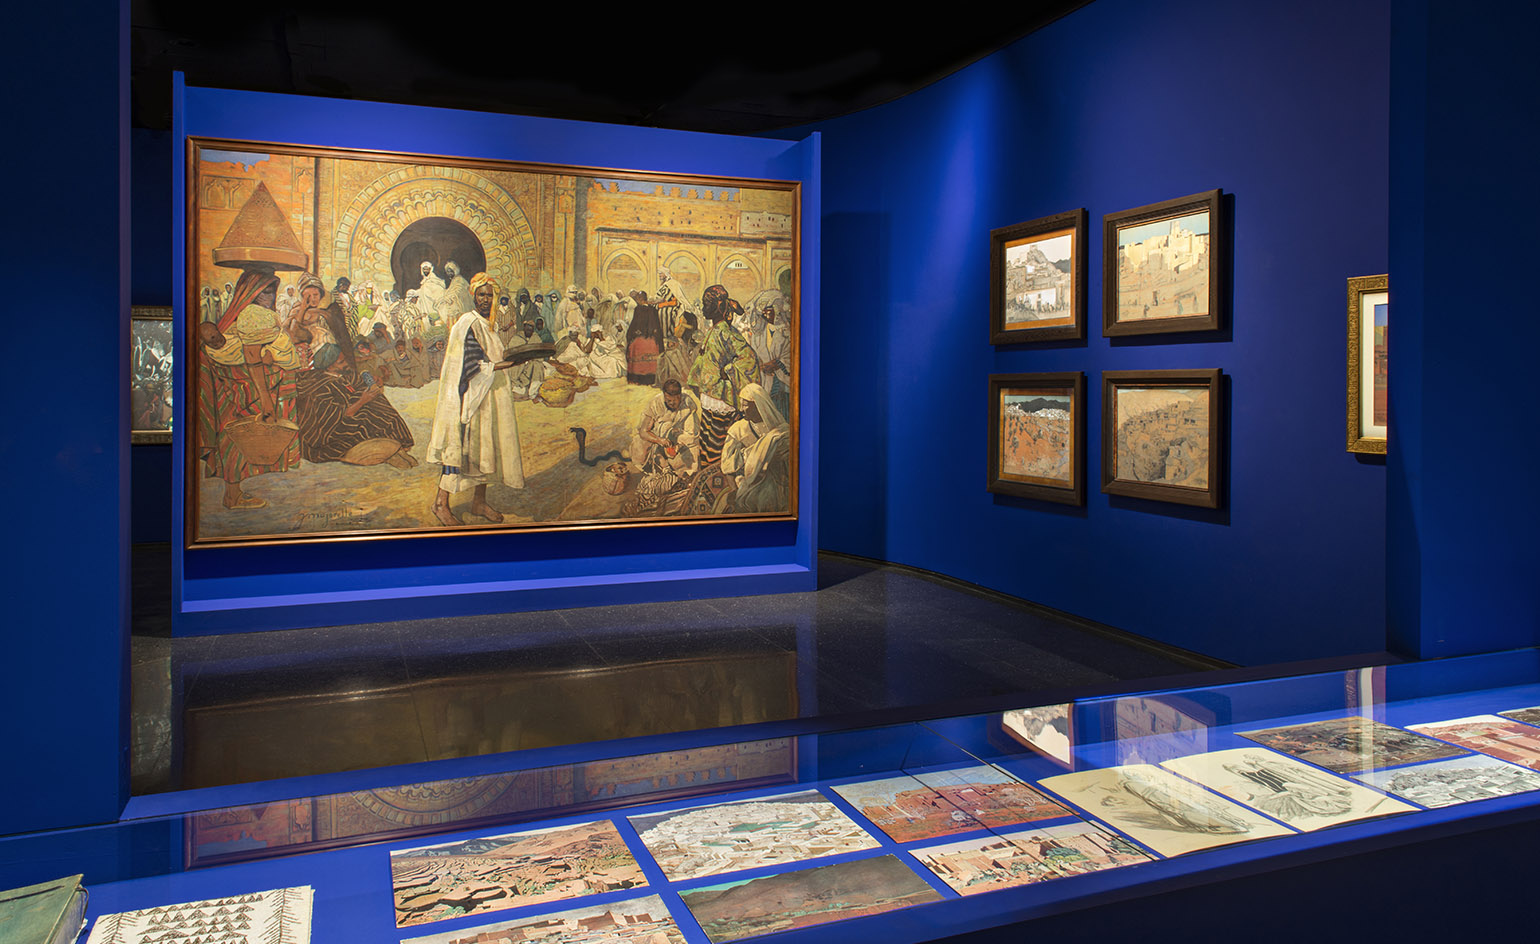 bfc72c59e90 In the temporary exhibition space an inaugural show titled 'Jacques  Majorelle's Morocco' curated by Félix Marcilhac will offer the Moroccan  public the ...